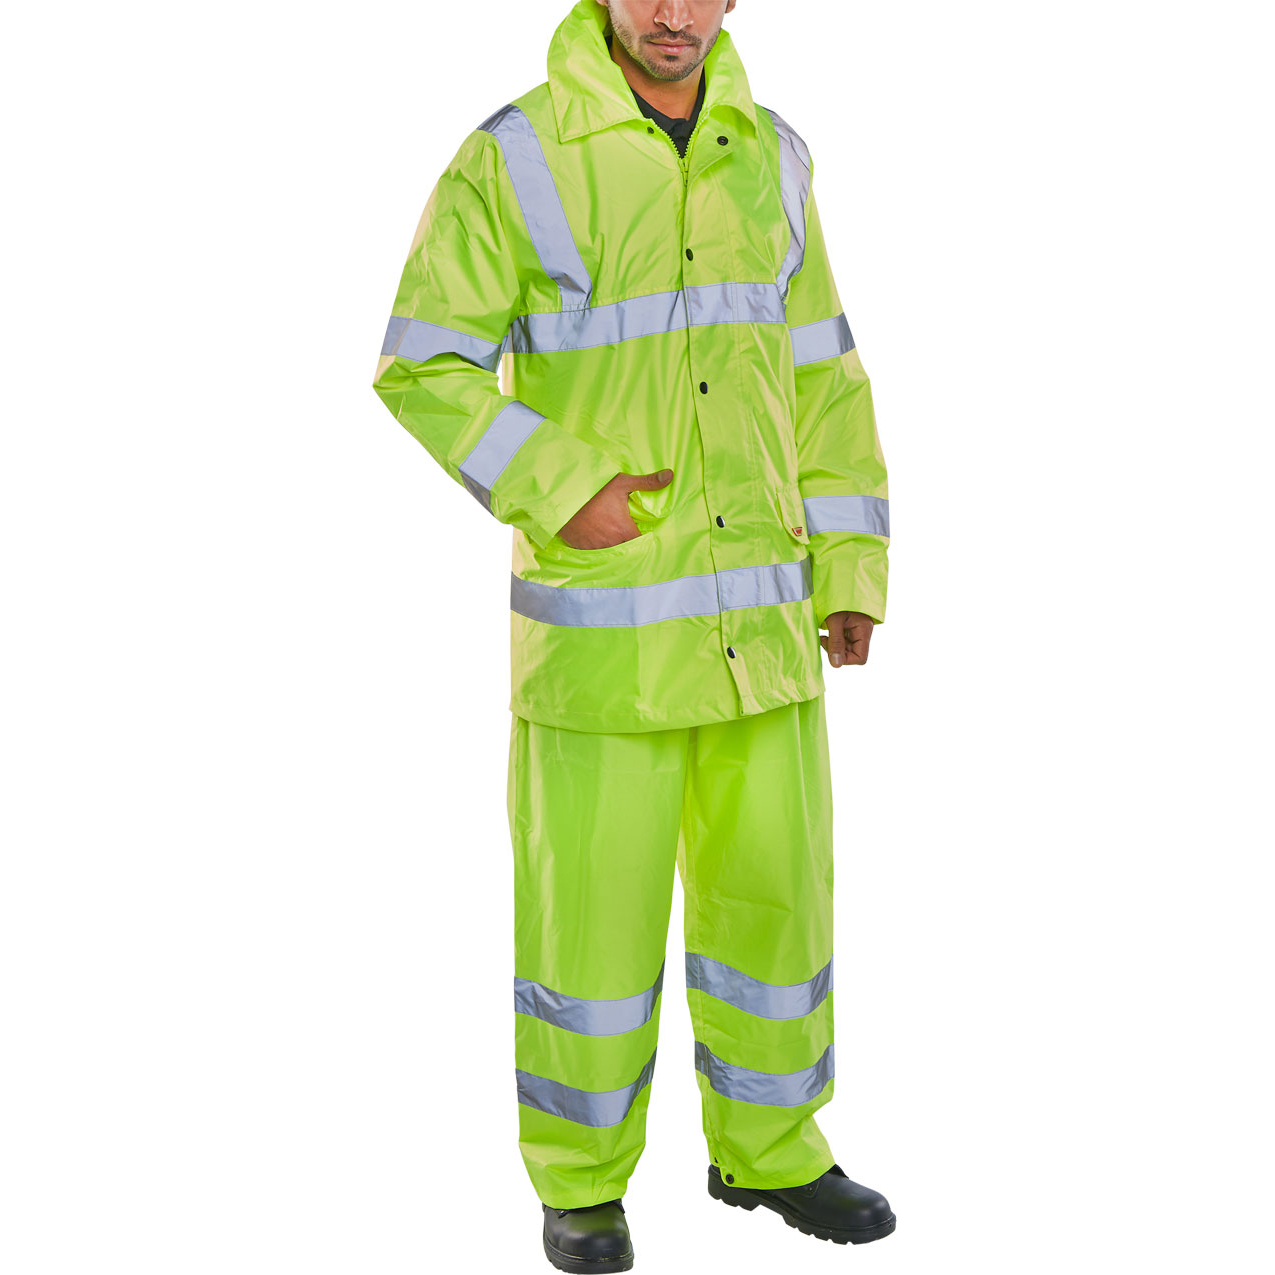 Bodywarmers BSeen Hi-Vis L/Wt Suit Jkt/Trs EN ISO 20471 EN 343 XL Saturn Yellow Ref TS8SYXL *Up to 3 Day Leadtime*